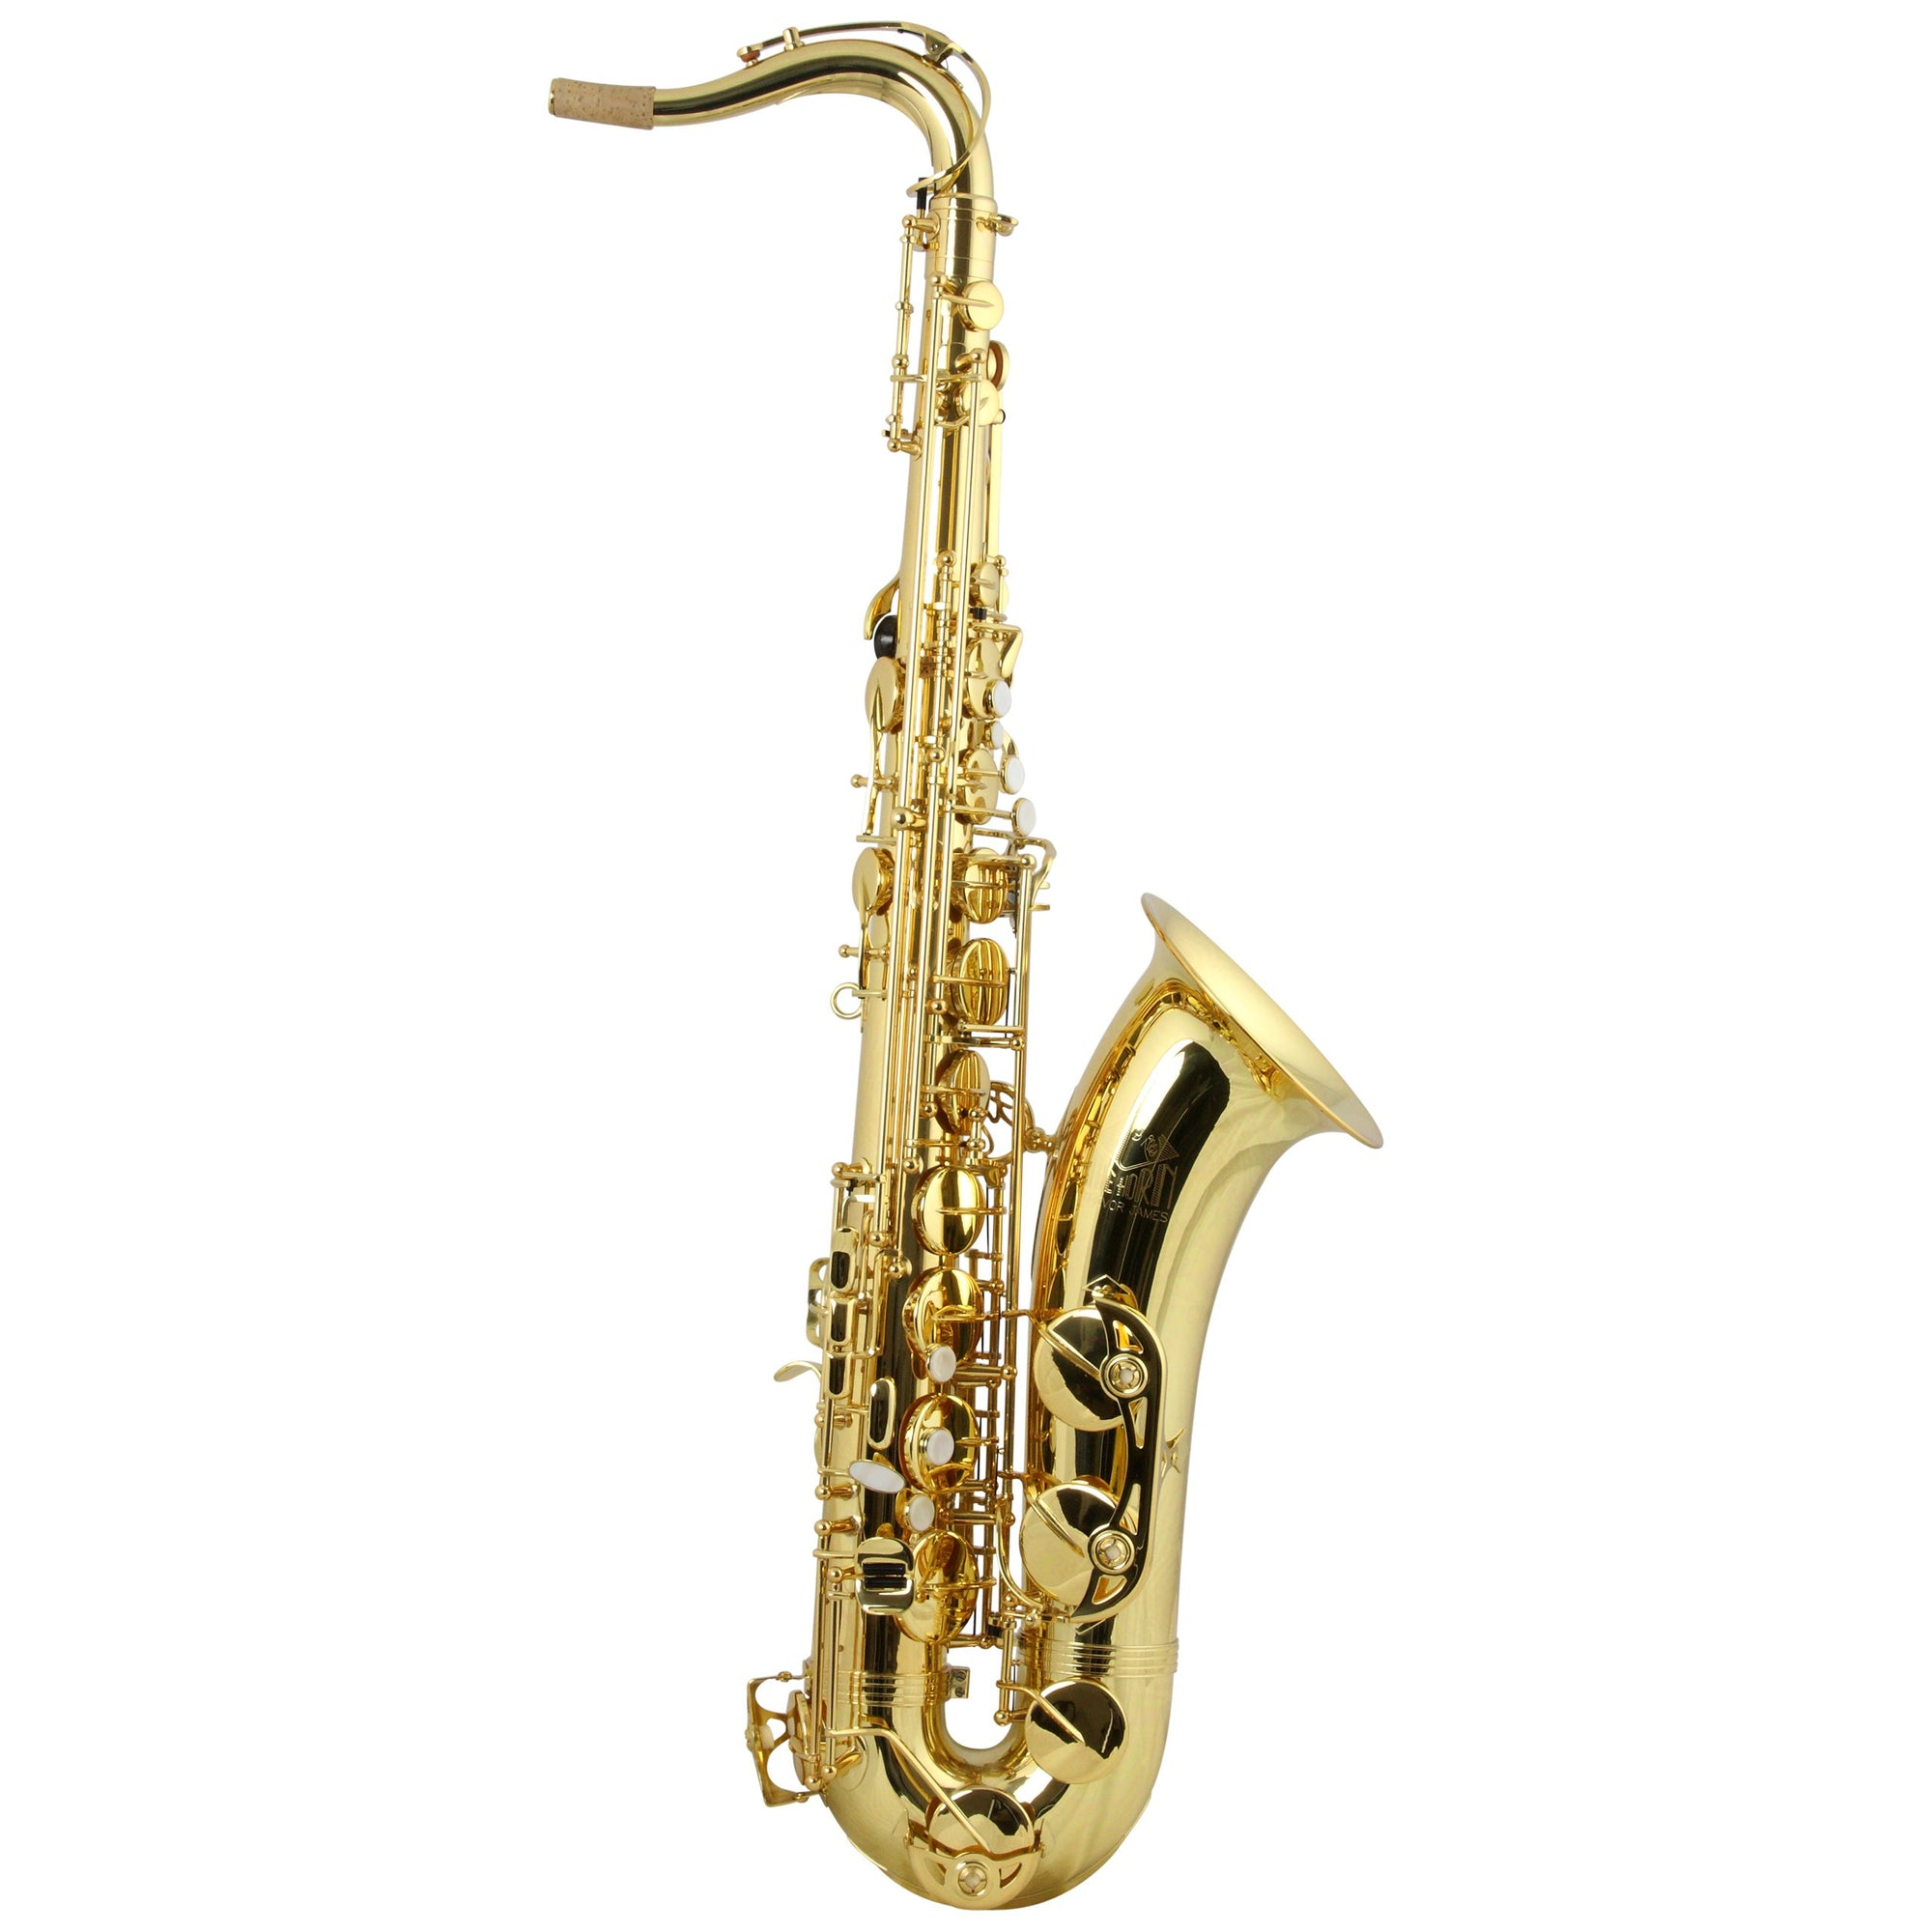 Trevor James - Classic Tenor Saxophones-Saxophone-Trevor James-Gold Lacquer-Music Elements